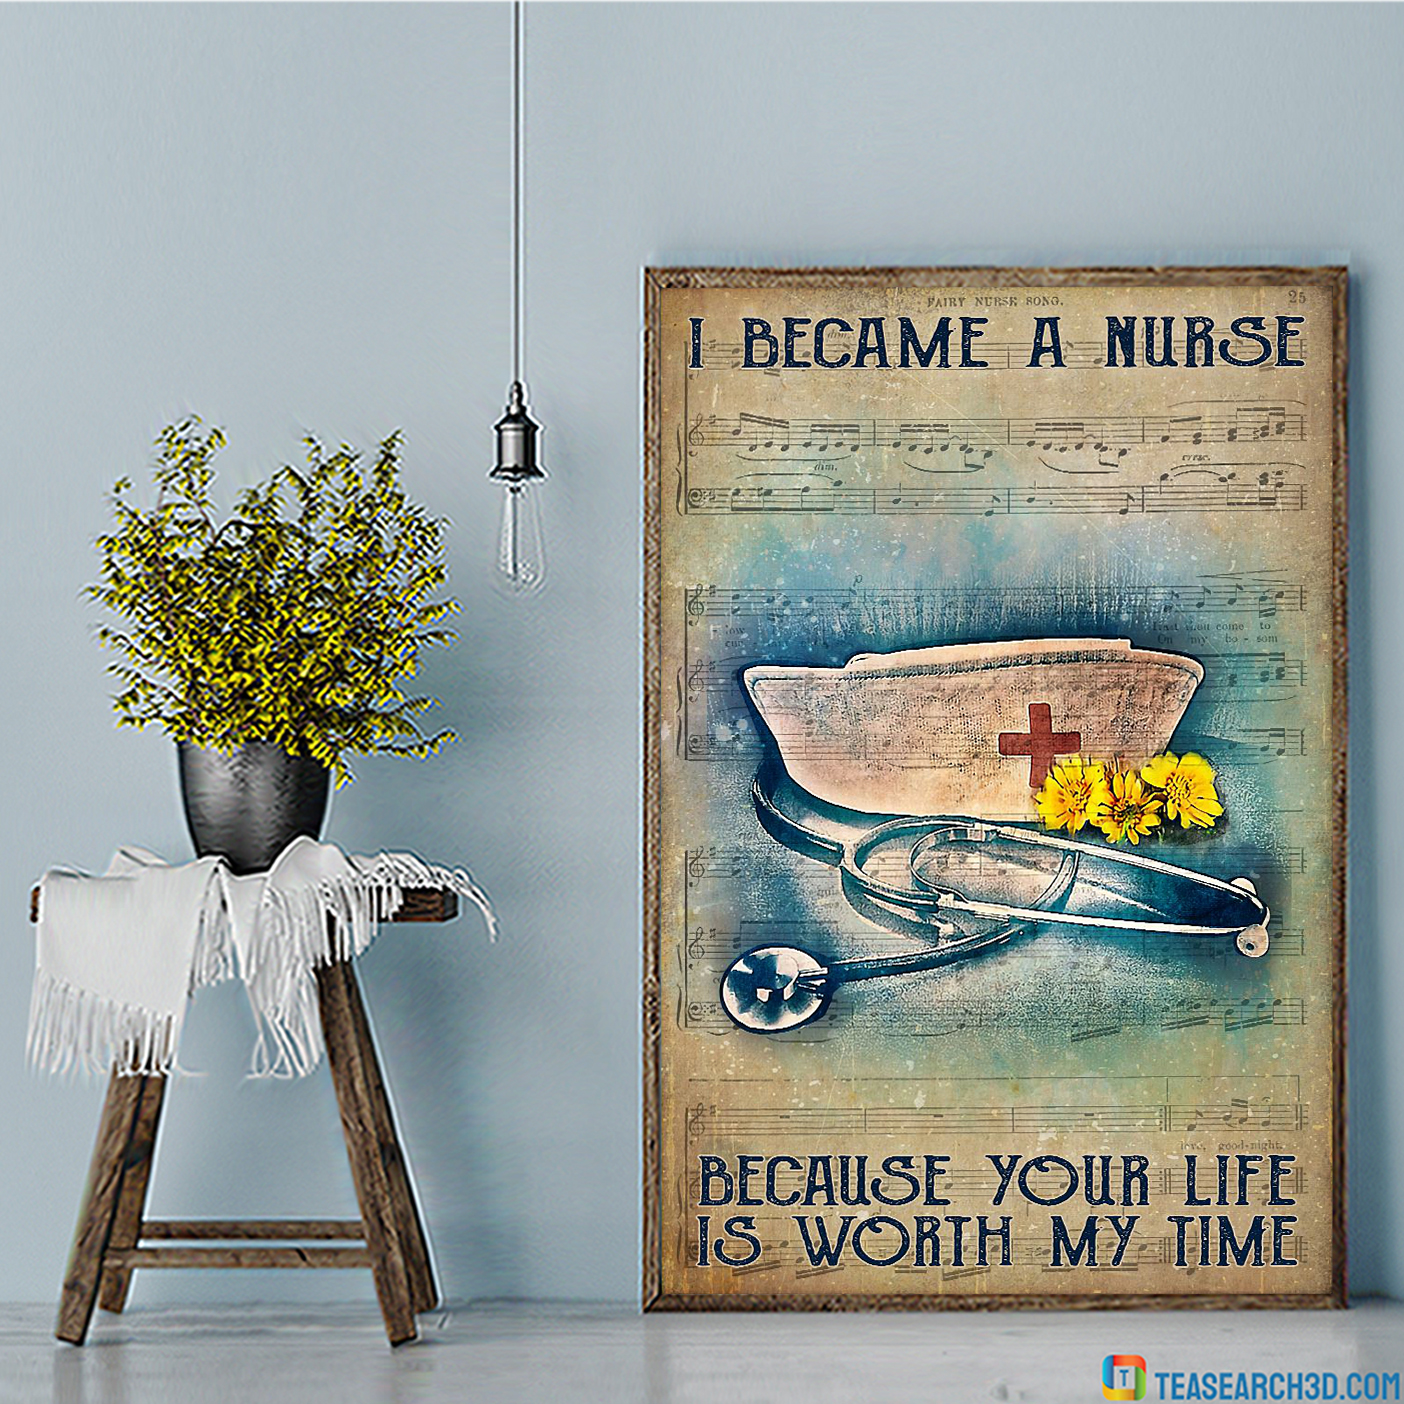 Fairy nurse song I became a nurse because your life is worth my time poster